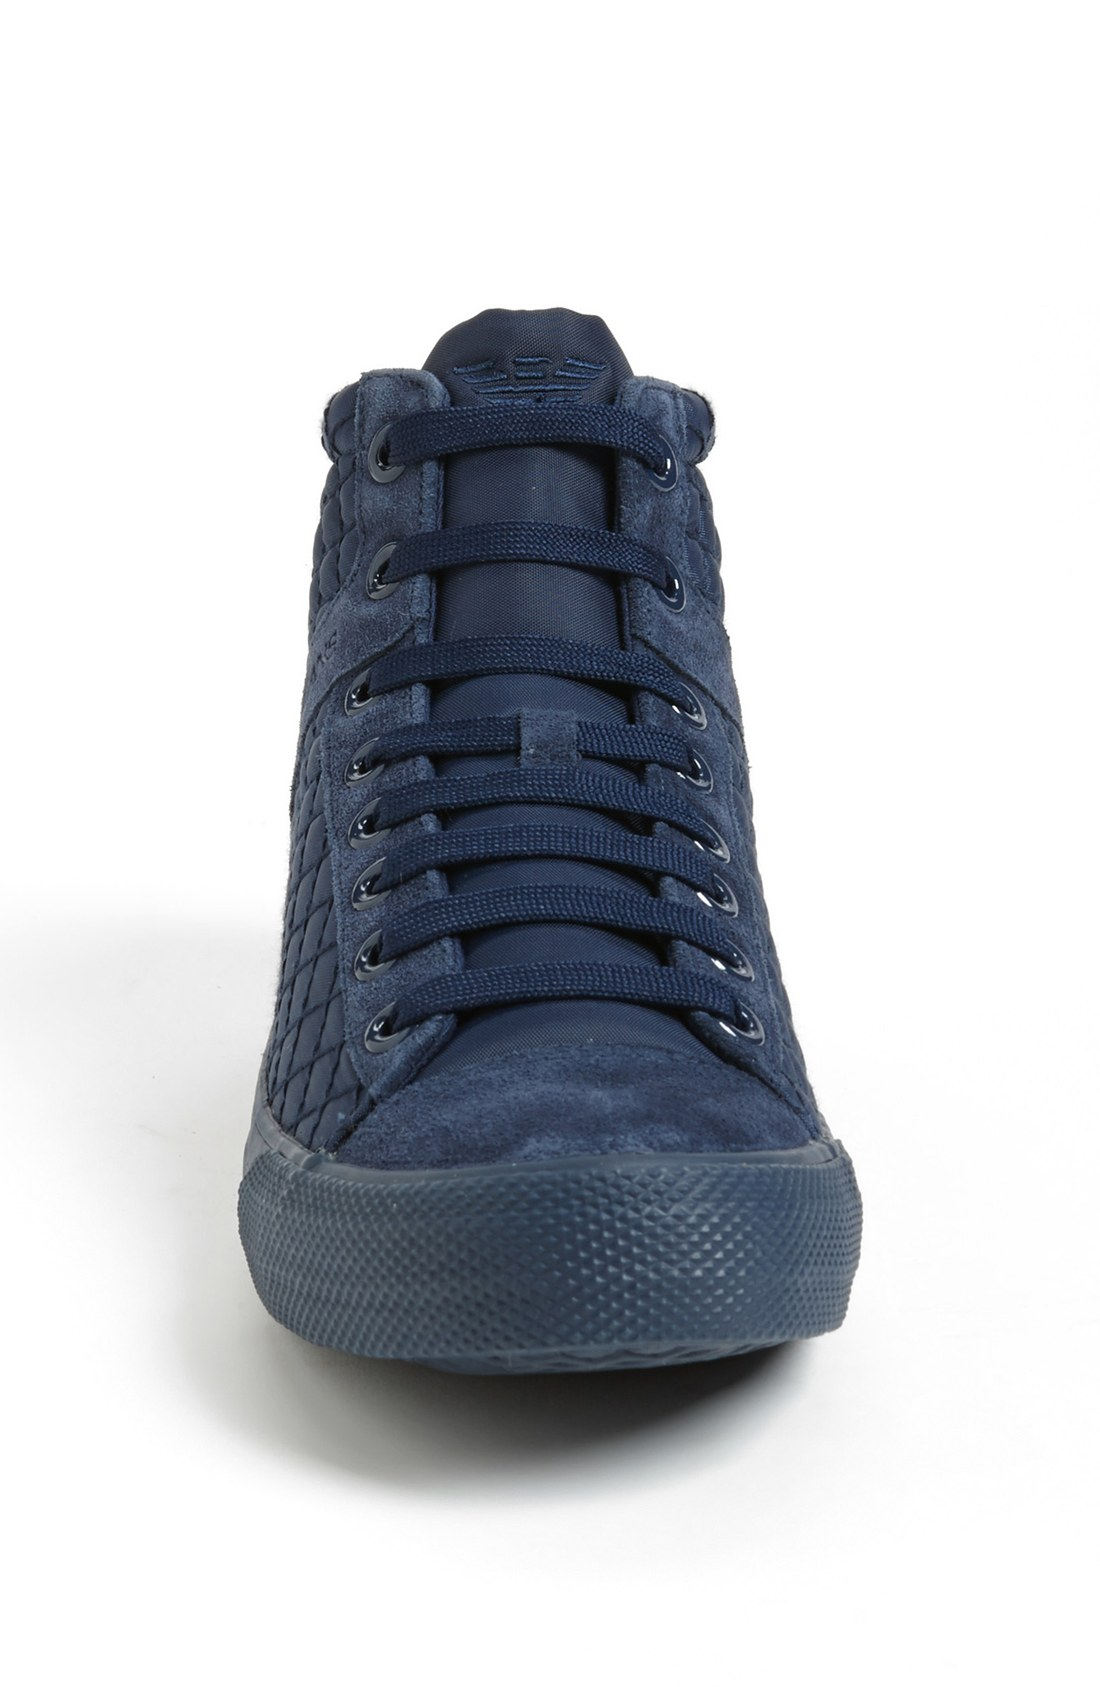 armani jeans quilted sneaker in black for men navy lyst. Black Bedroom Furniture Sets. Home Design Ideas